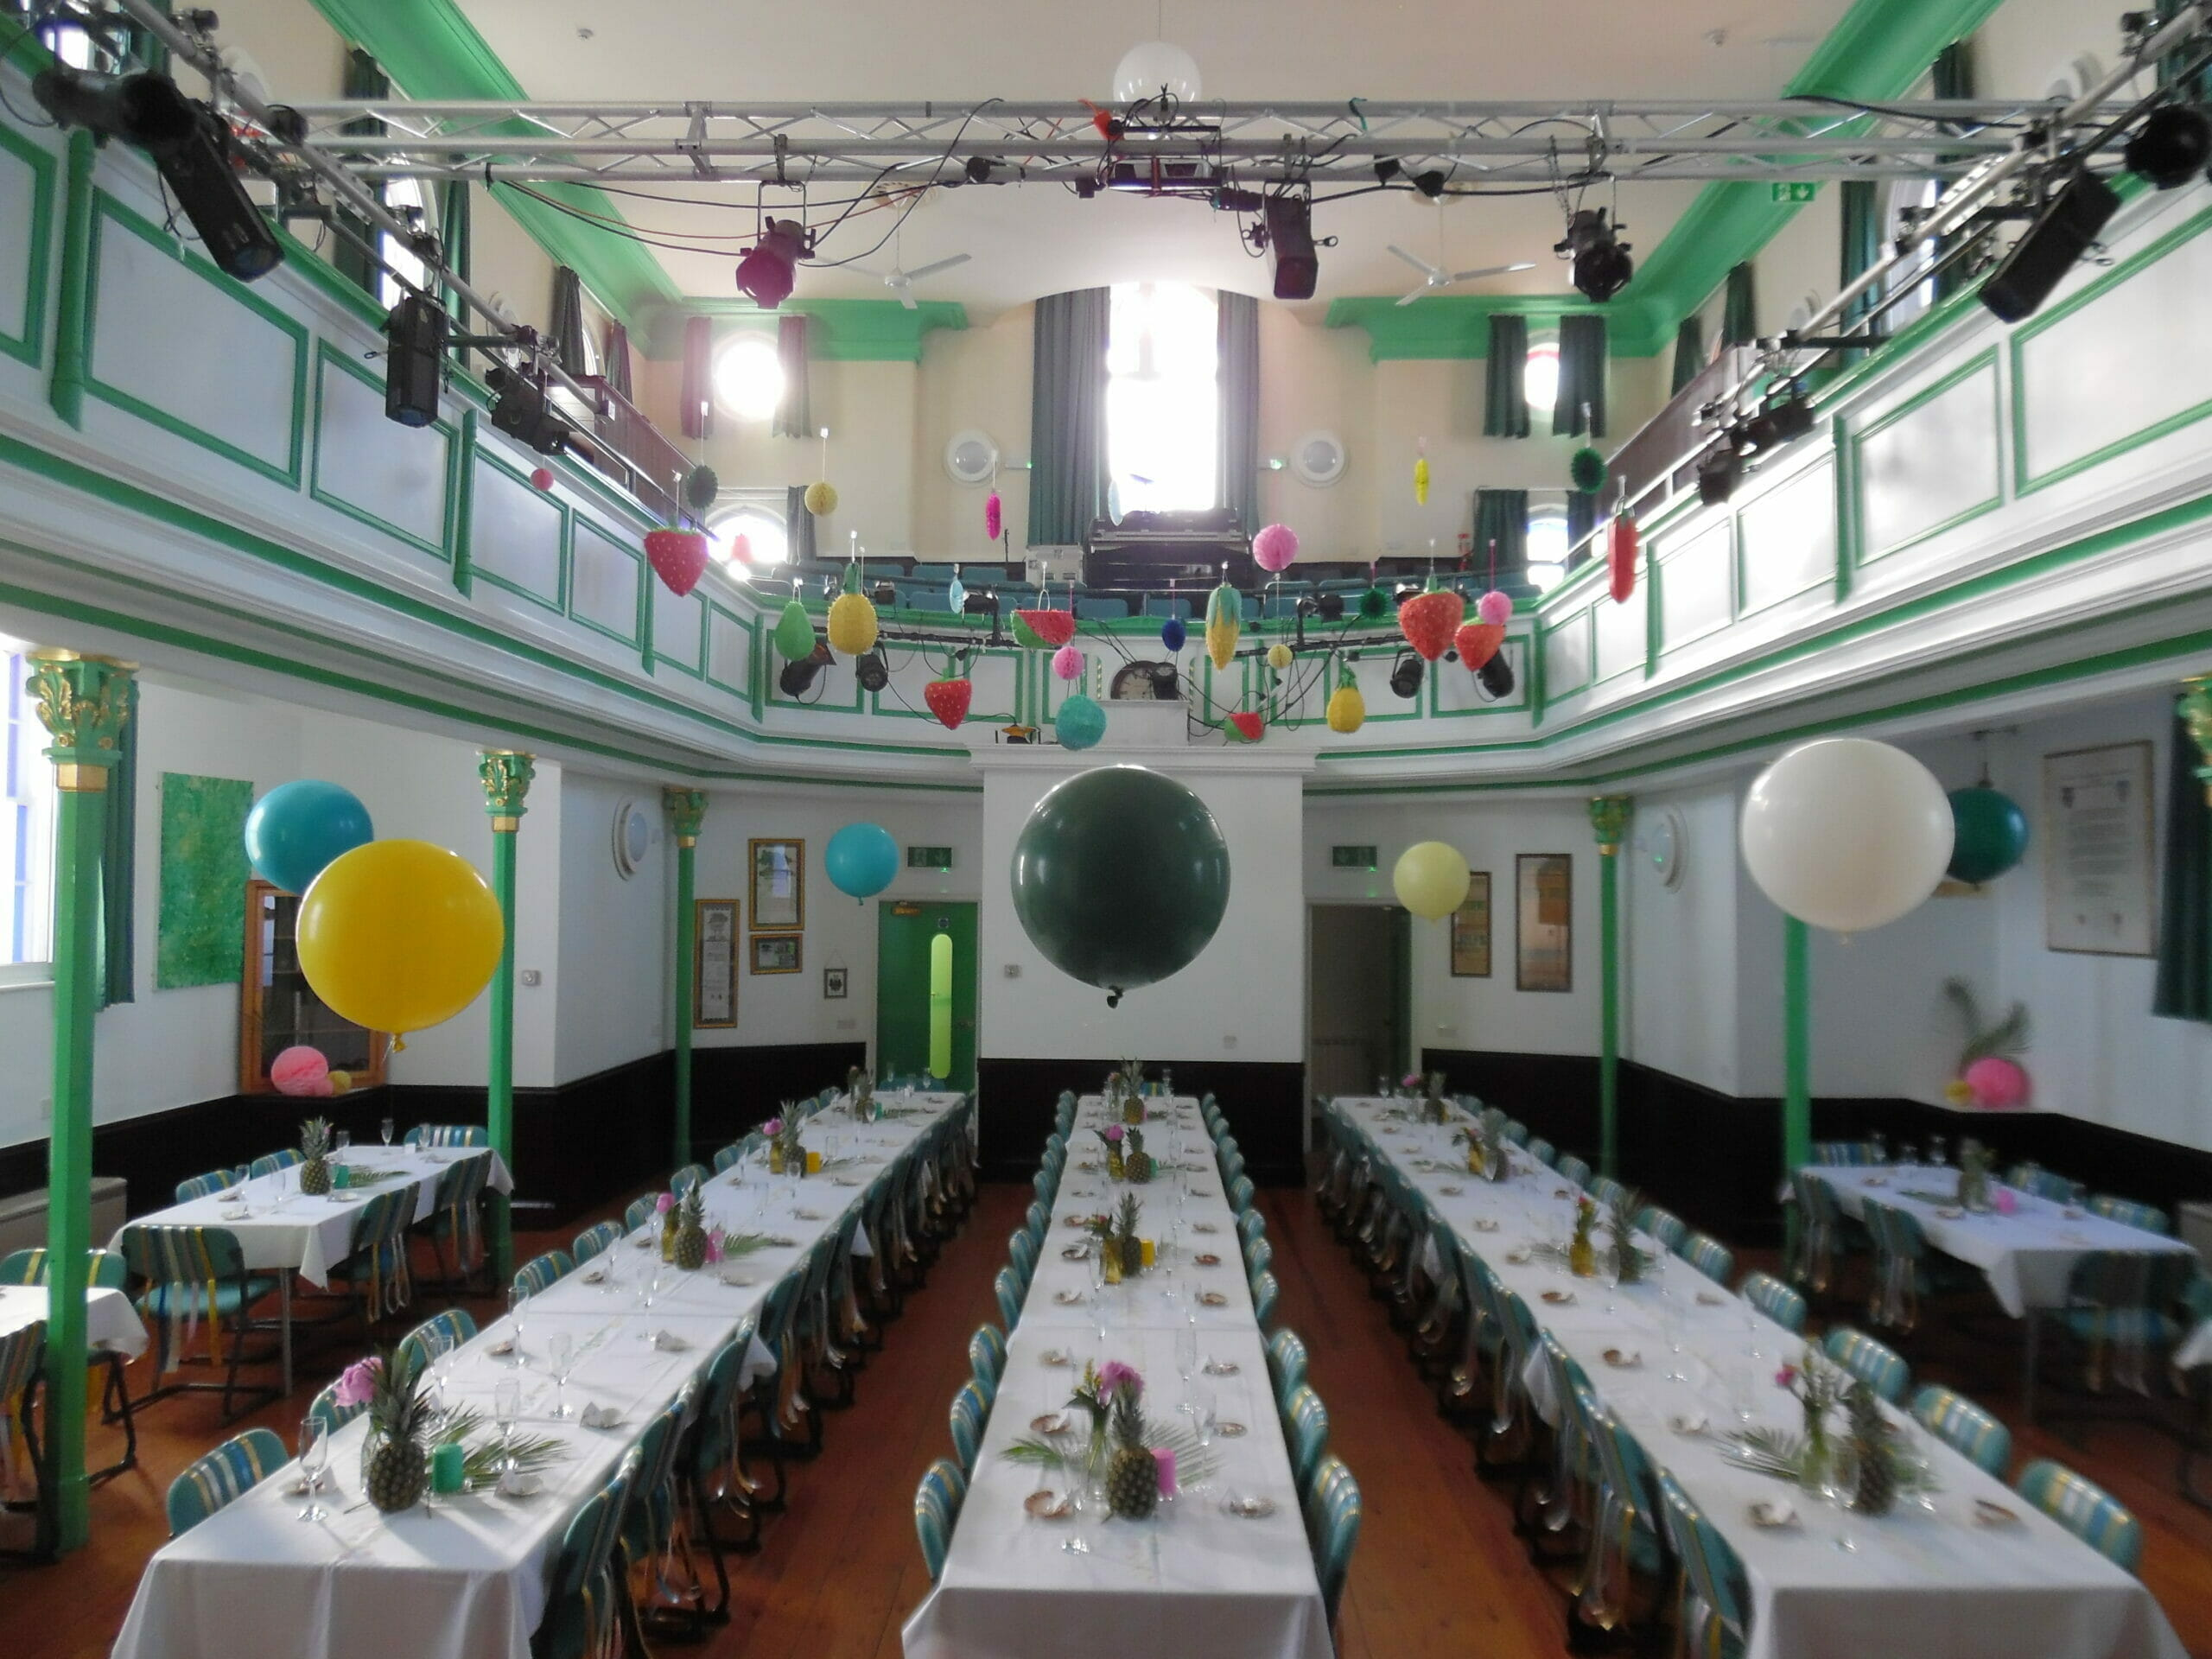 Photo shows a room layout with tressle tables and balloons